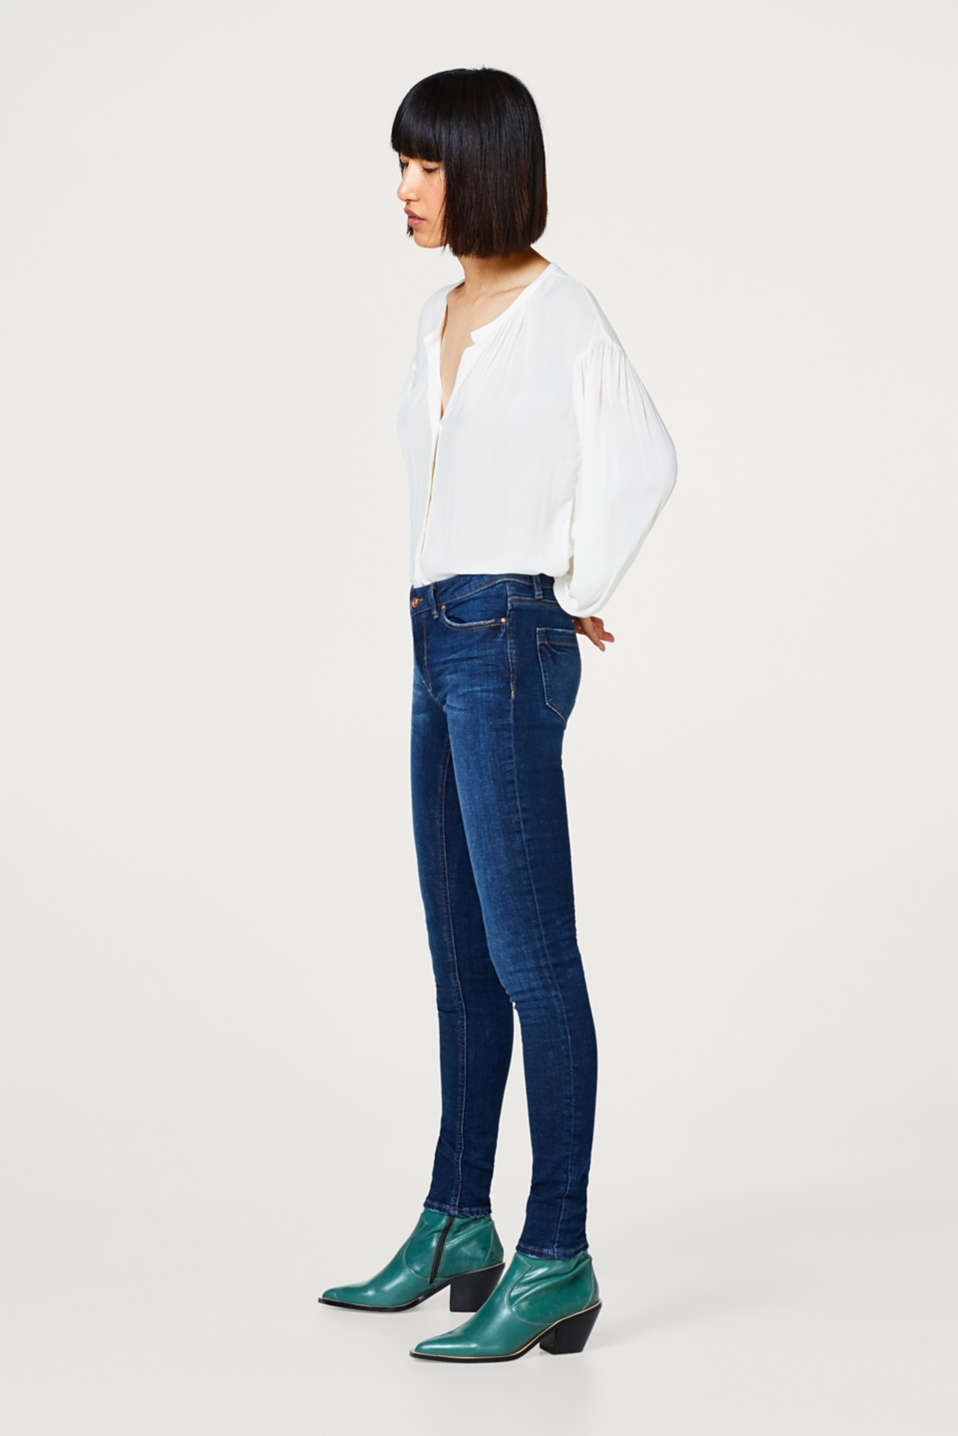 Stretch jeans with washed out or distressed effects